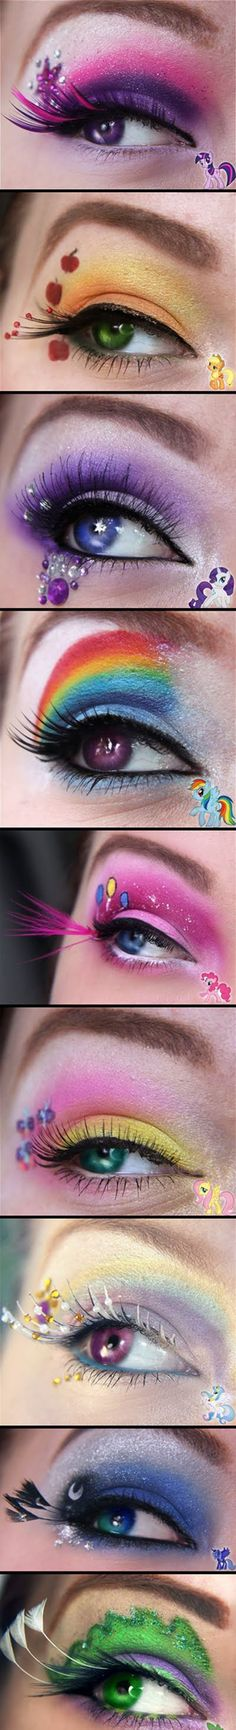 (Bridesmare's makeup) My little pony makeup art.  With brights in fashion this spring, I could totally see this becoming a thing.